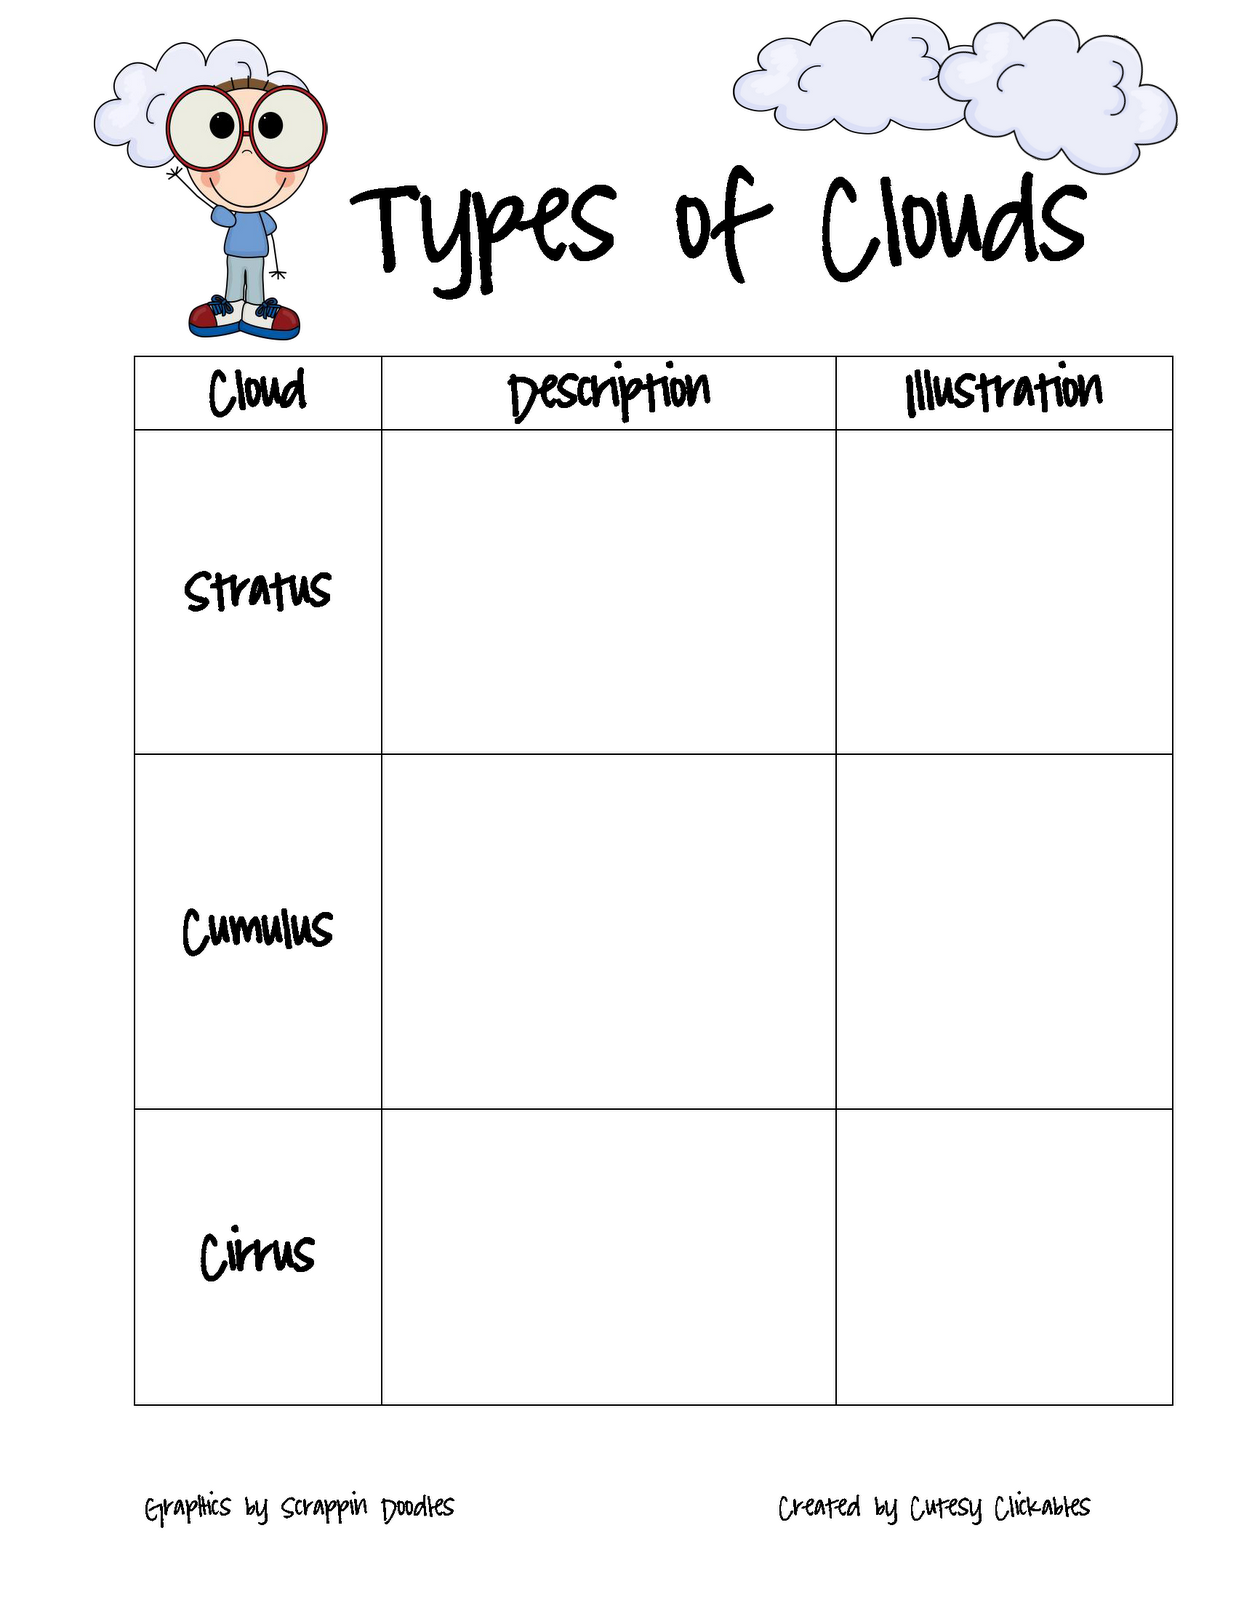 Collaboration Cuties Fun With Weather And Clouds